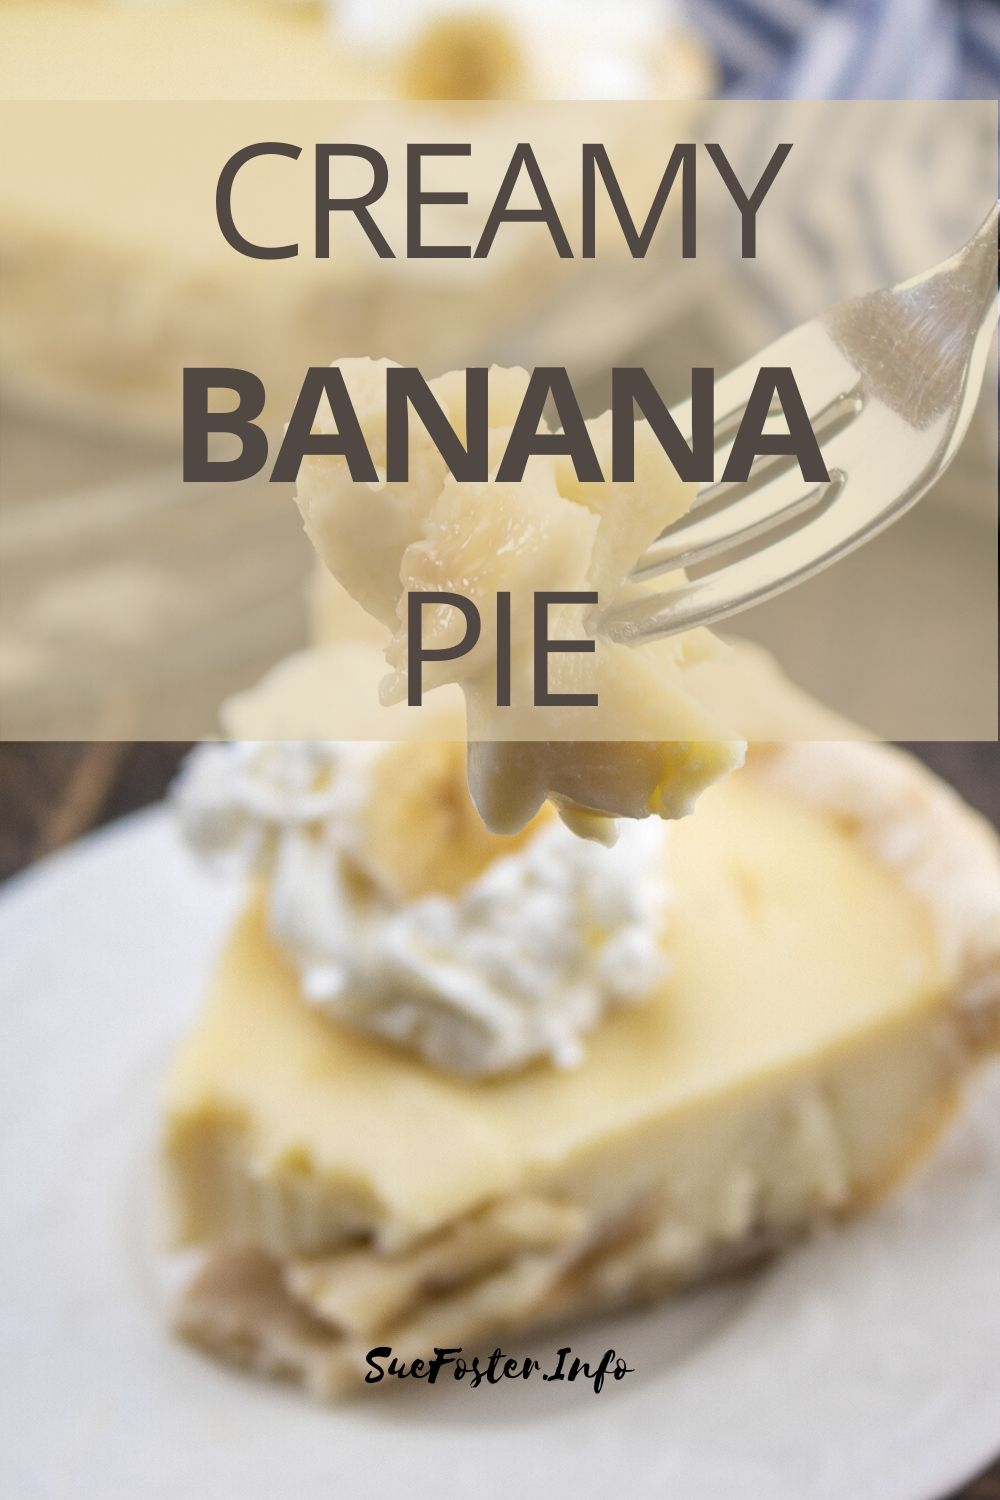 Don't throw out your uneaten bananas, so much food goes to waste these days, make this delicious creamy banana pie instead!